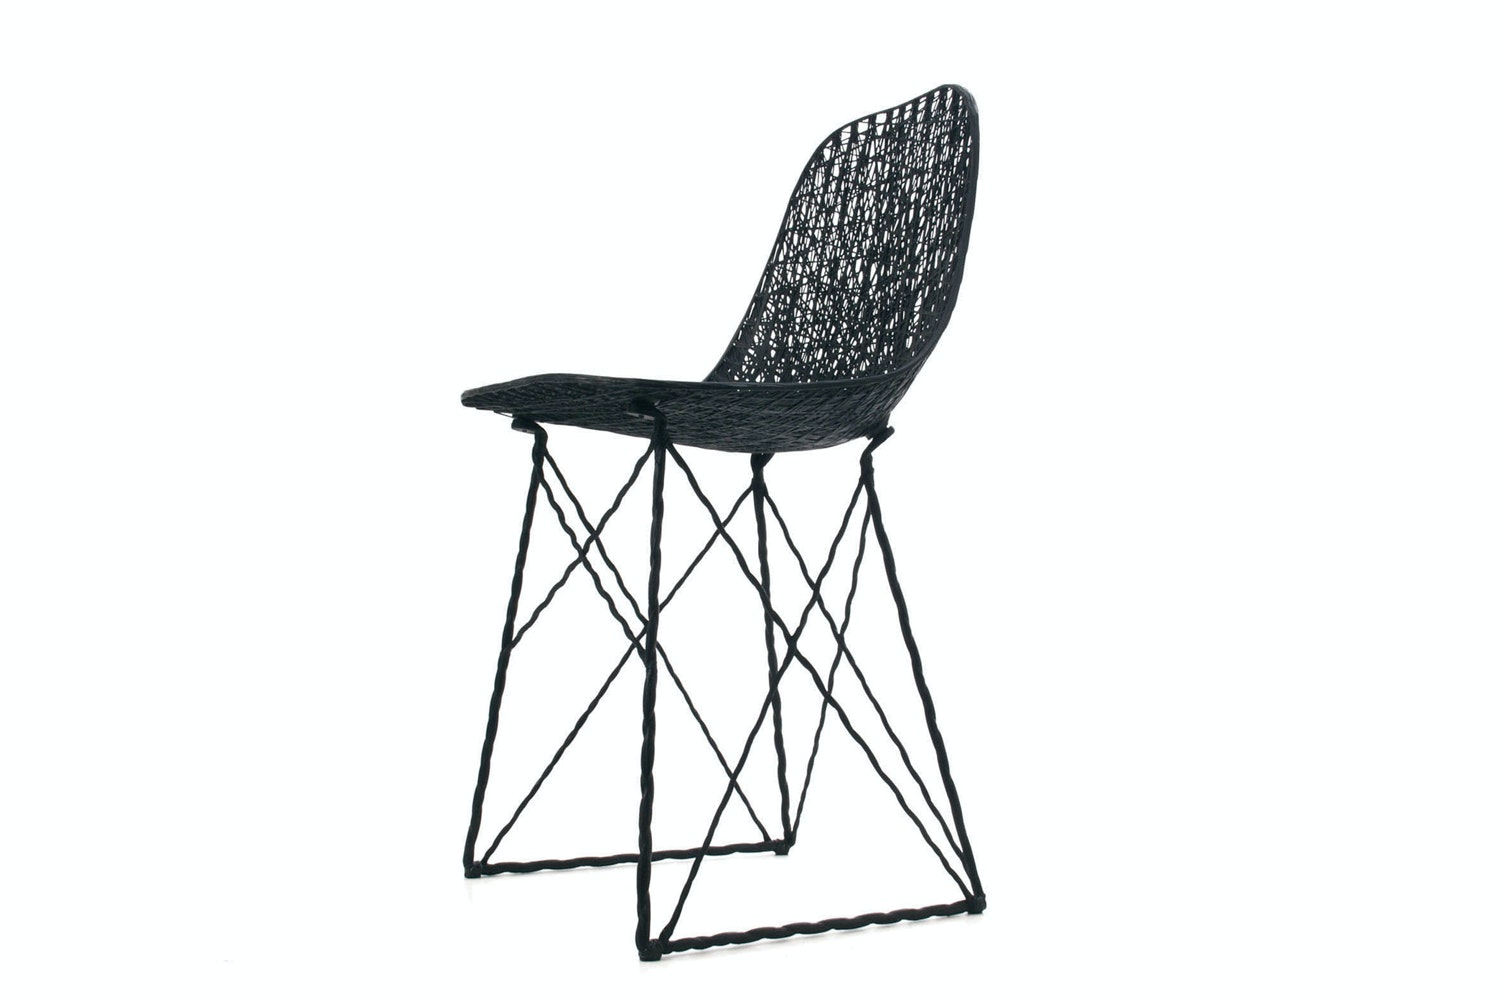 Carbon Chair by Bertjan Pot & Marcel Wanders for Moooi